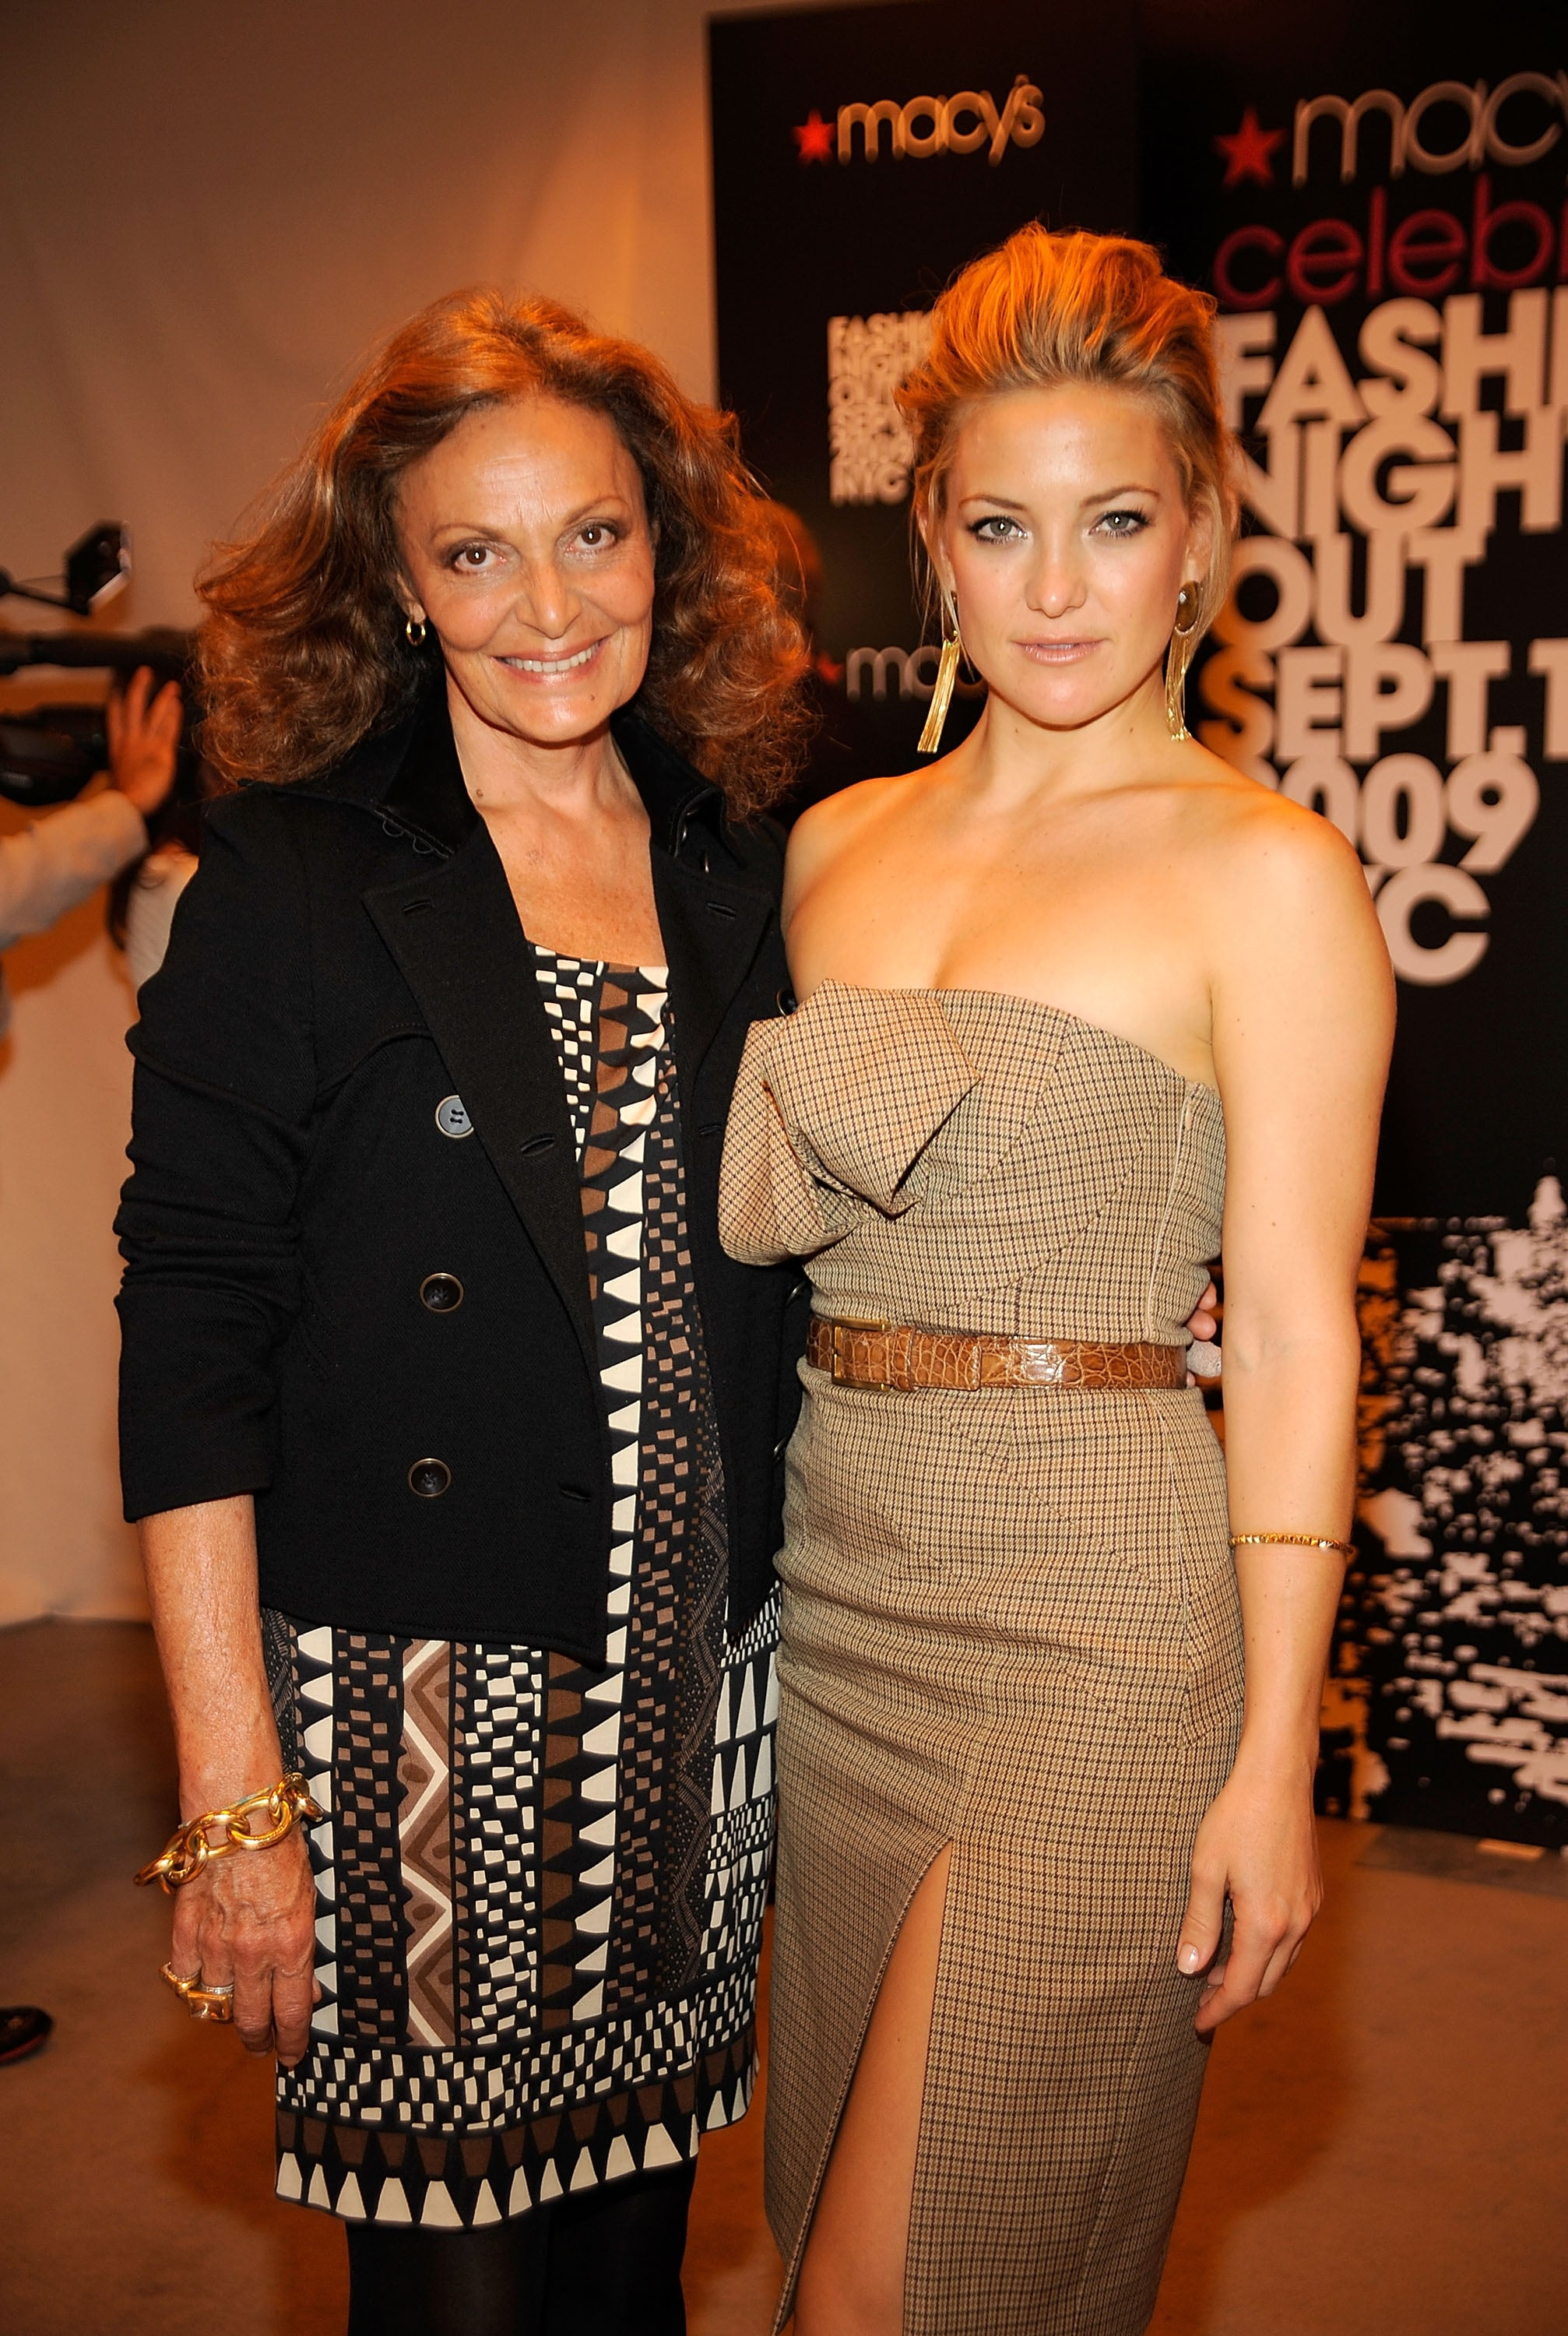 DVF and Kate celebrate